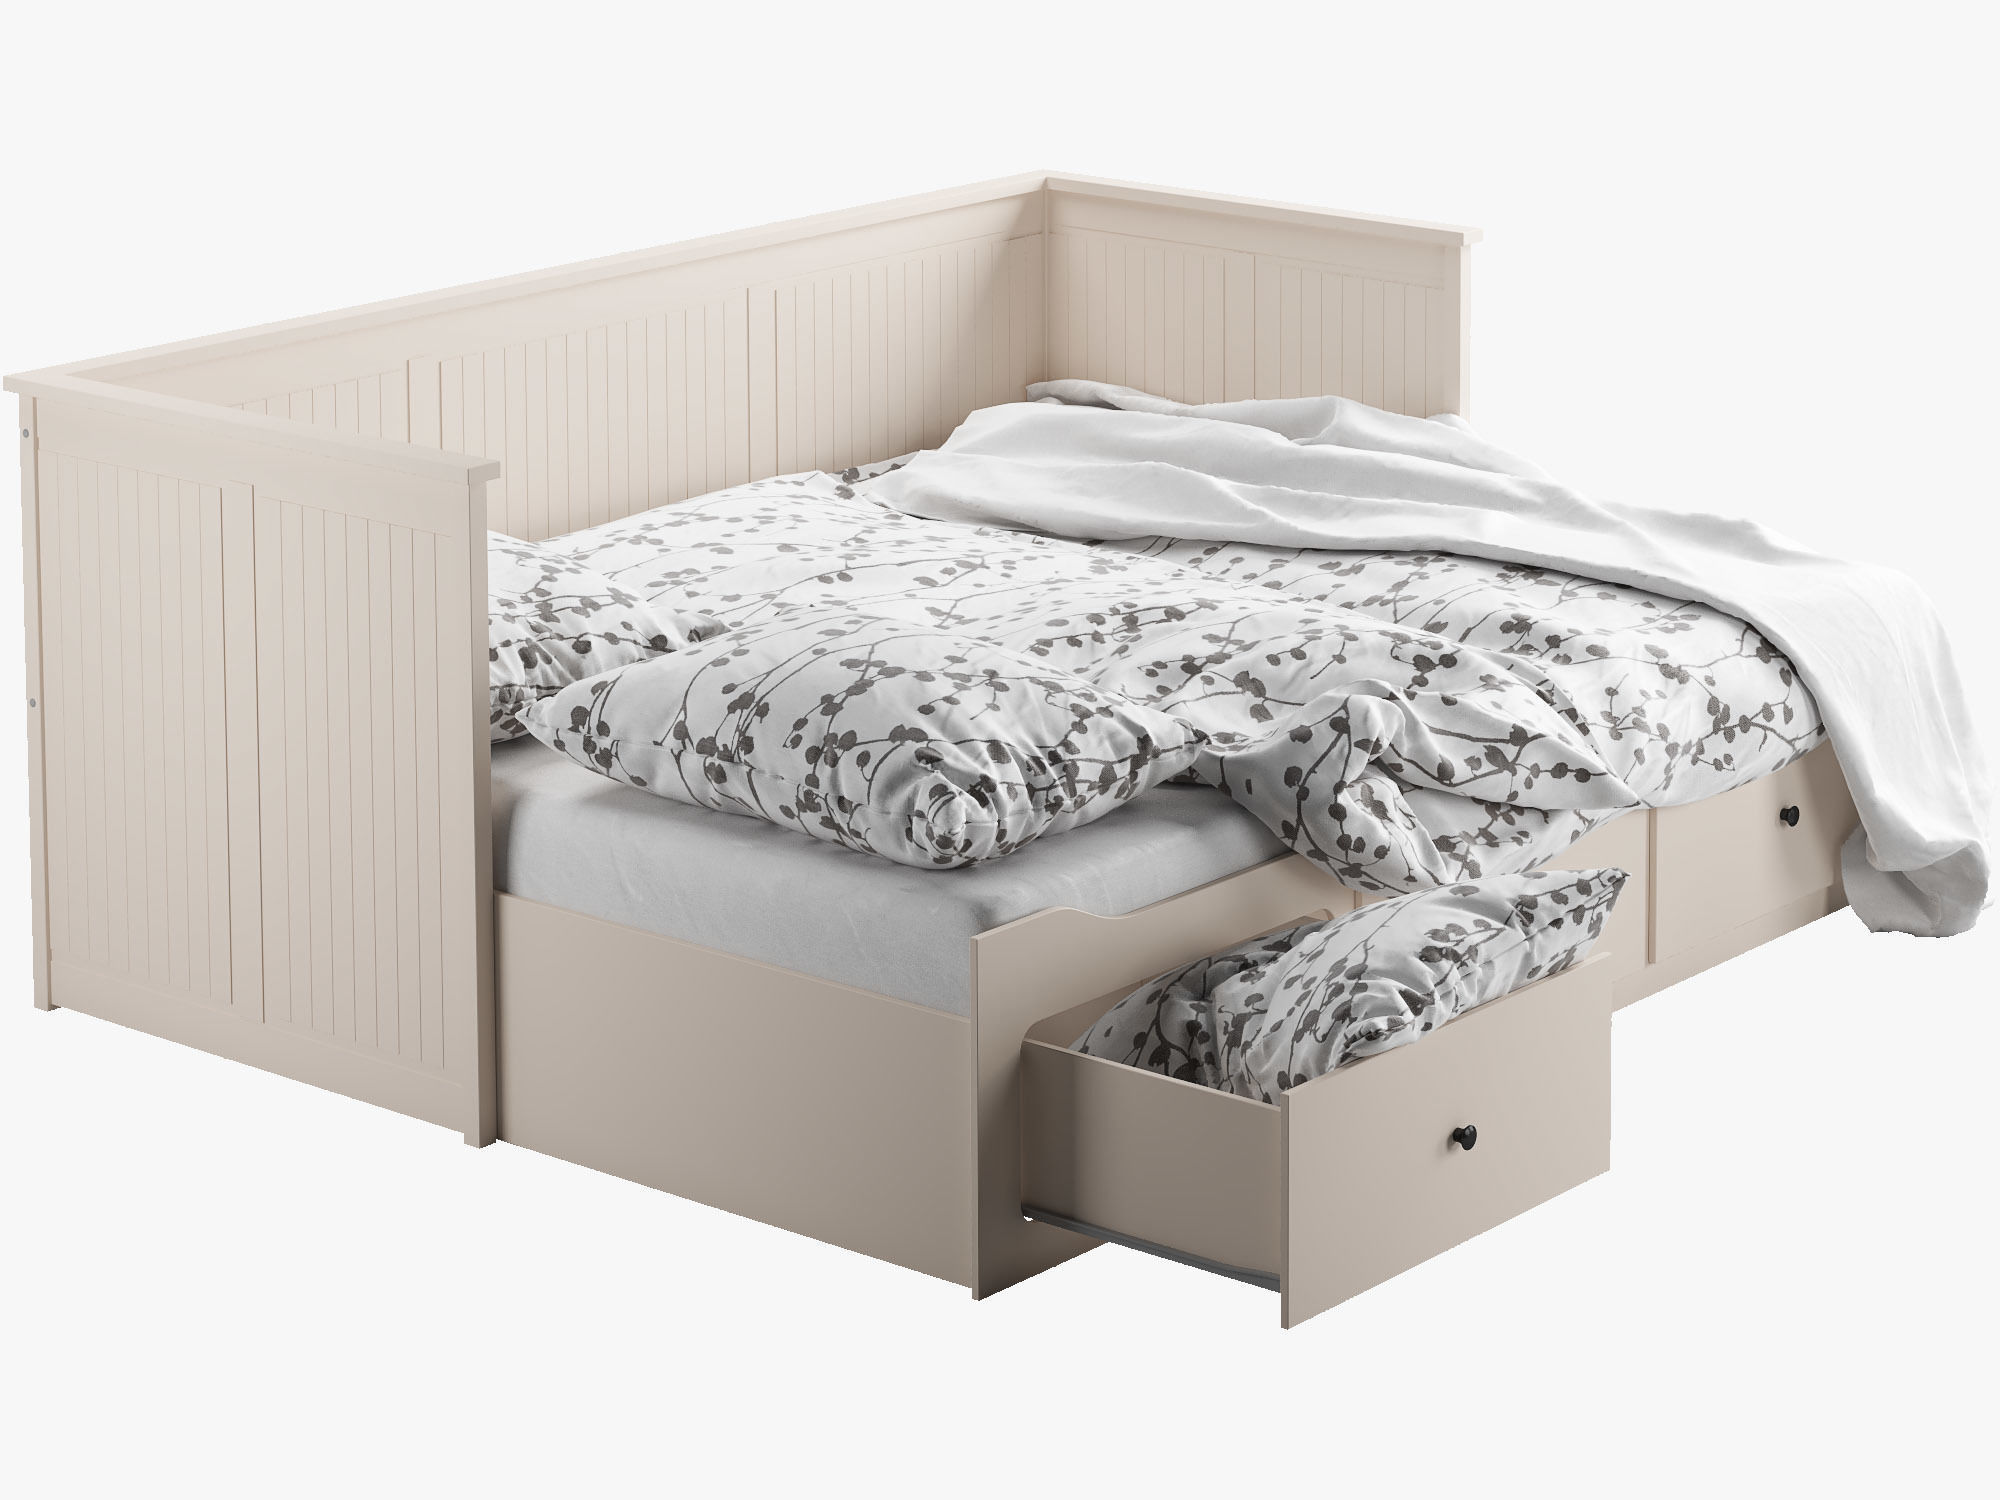 Ikea Bettbank Best Ikea Hemnes Bed D Model Max Obj Ds Fbx Mtl With